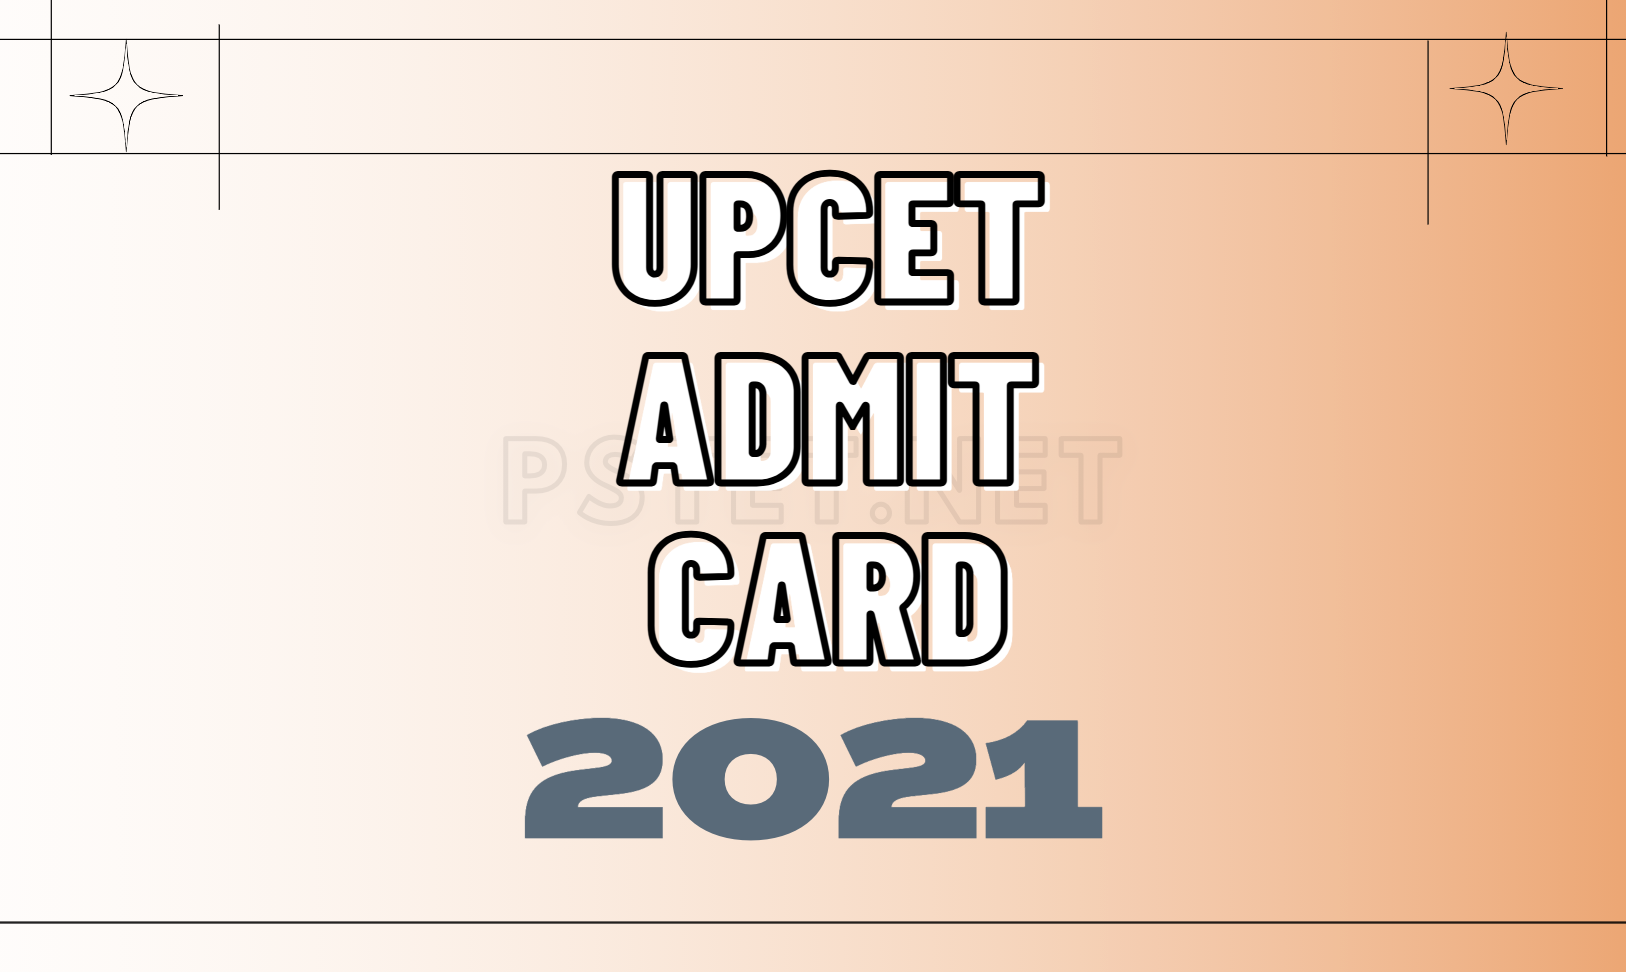 nta upcet admit card 2021, upcet admit card 2021 release date, upcet admit card 2021 date, upcet admit card 2021 download, upcet admit card 2021 sarkari result, upcet.nic.in 2021, upcet exam date 2021 admit card, upcet entrance exam date 2021,